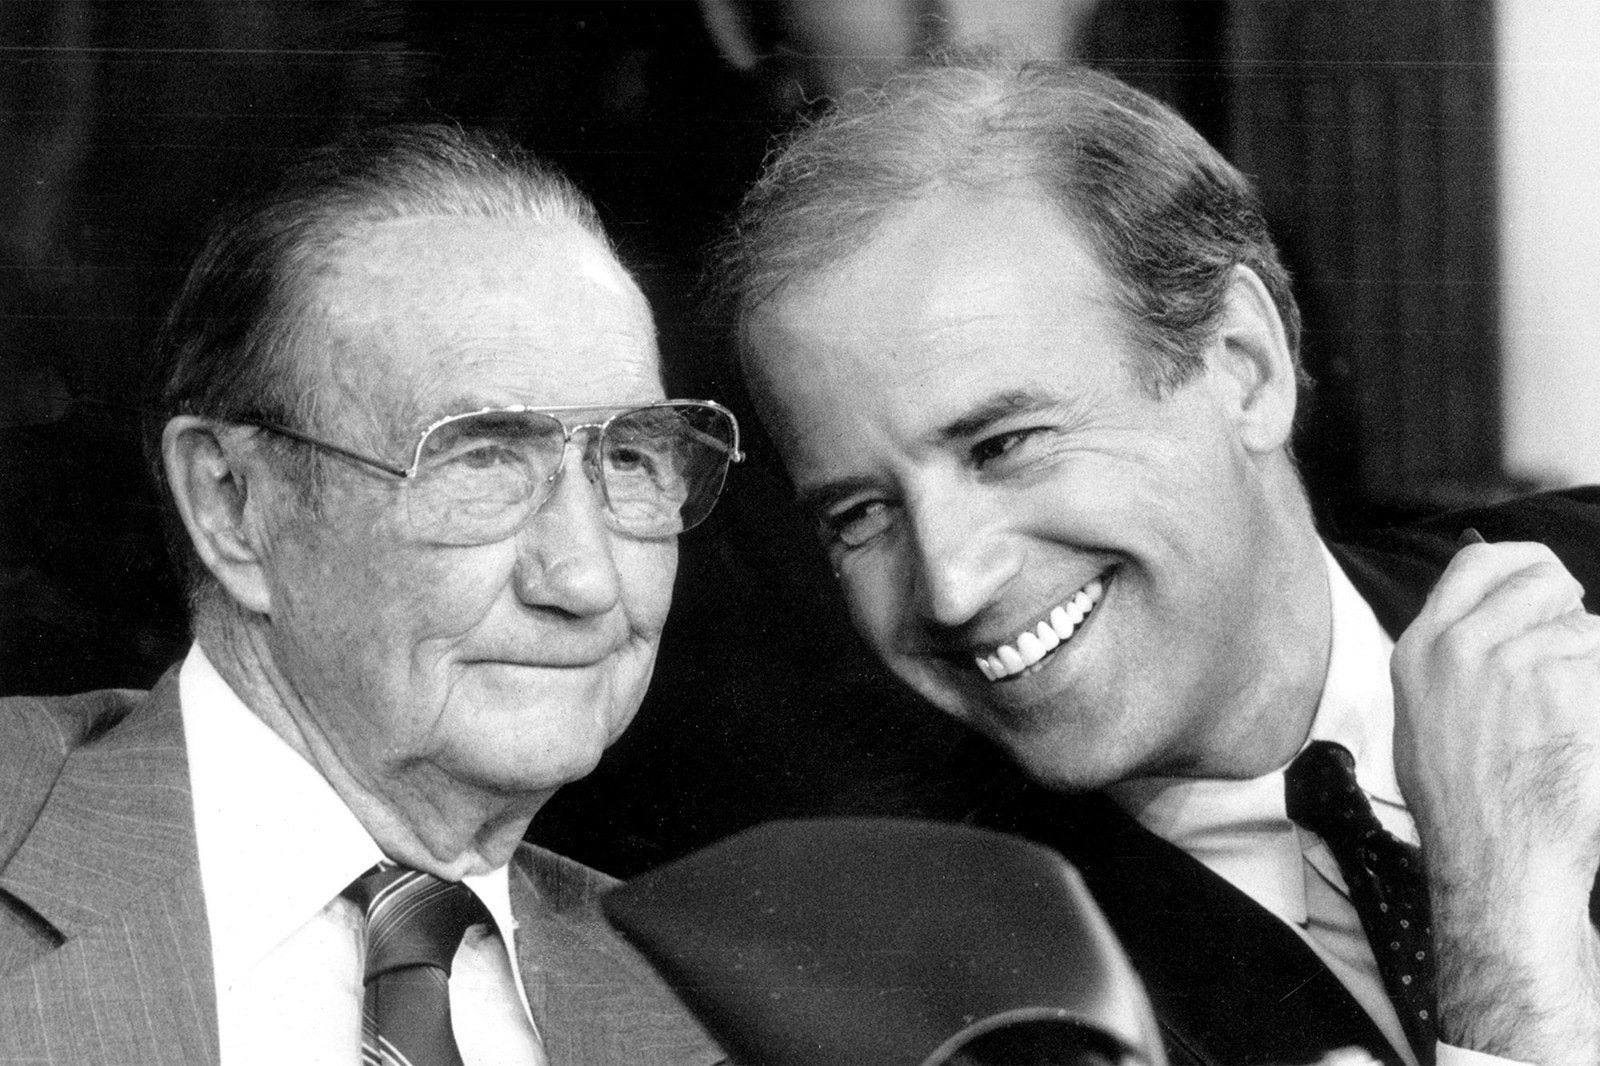 Joe Biden pointing at Supreme Court Justice nominee Clarence Thomas during the sexual harassment hearings (1991).